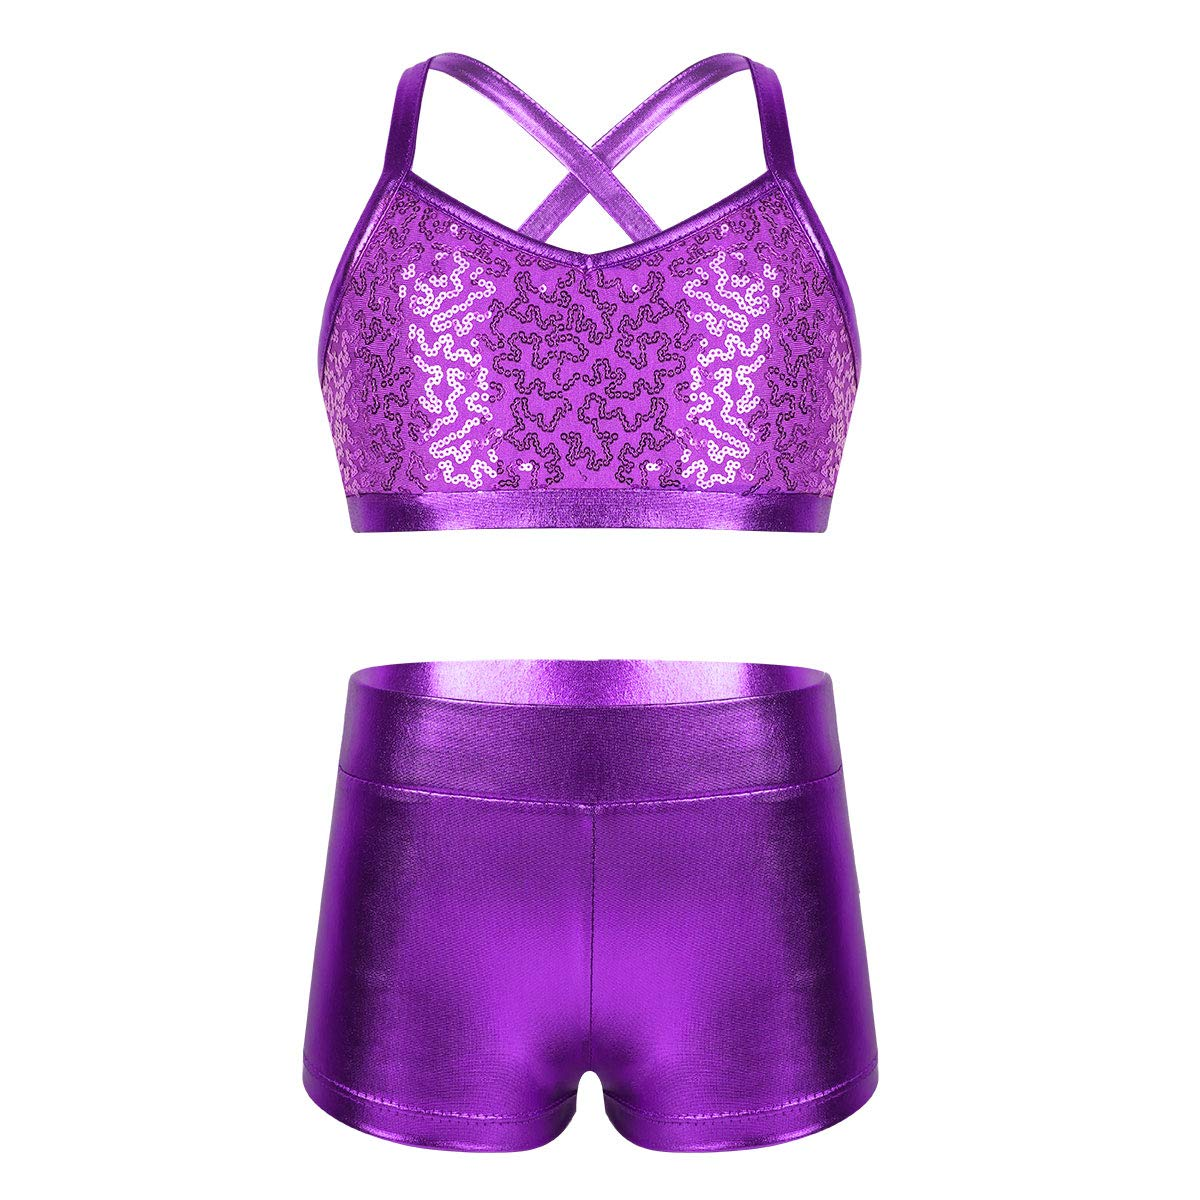 iEFiEL Kids Girls Gymnastics Sports Dance Two-Pieces Outfit Floral Lace Sleeveless Crop Top with Shorts Set